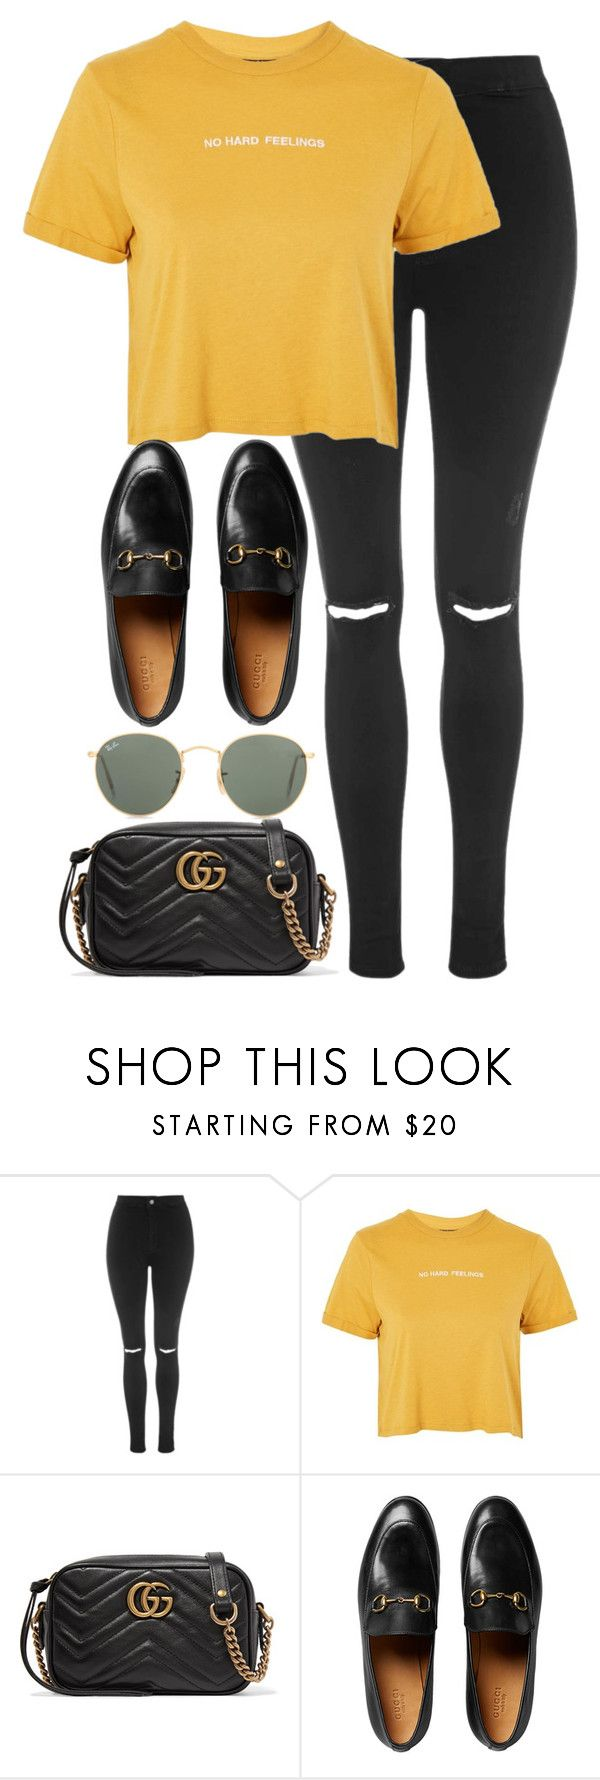 """Untitled #3321"" by elenaday on Polyvore featuring Topshop, Gucci and Ray-Ban"